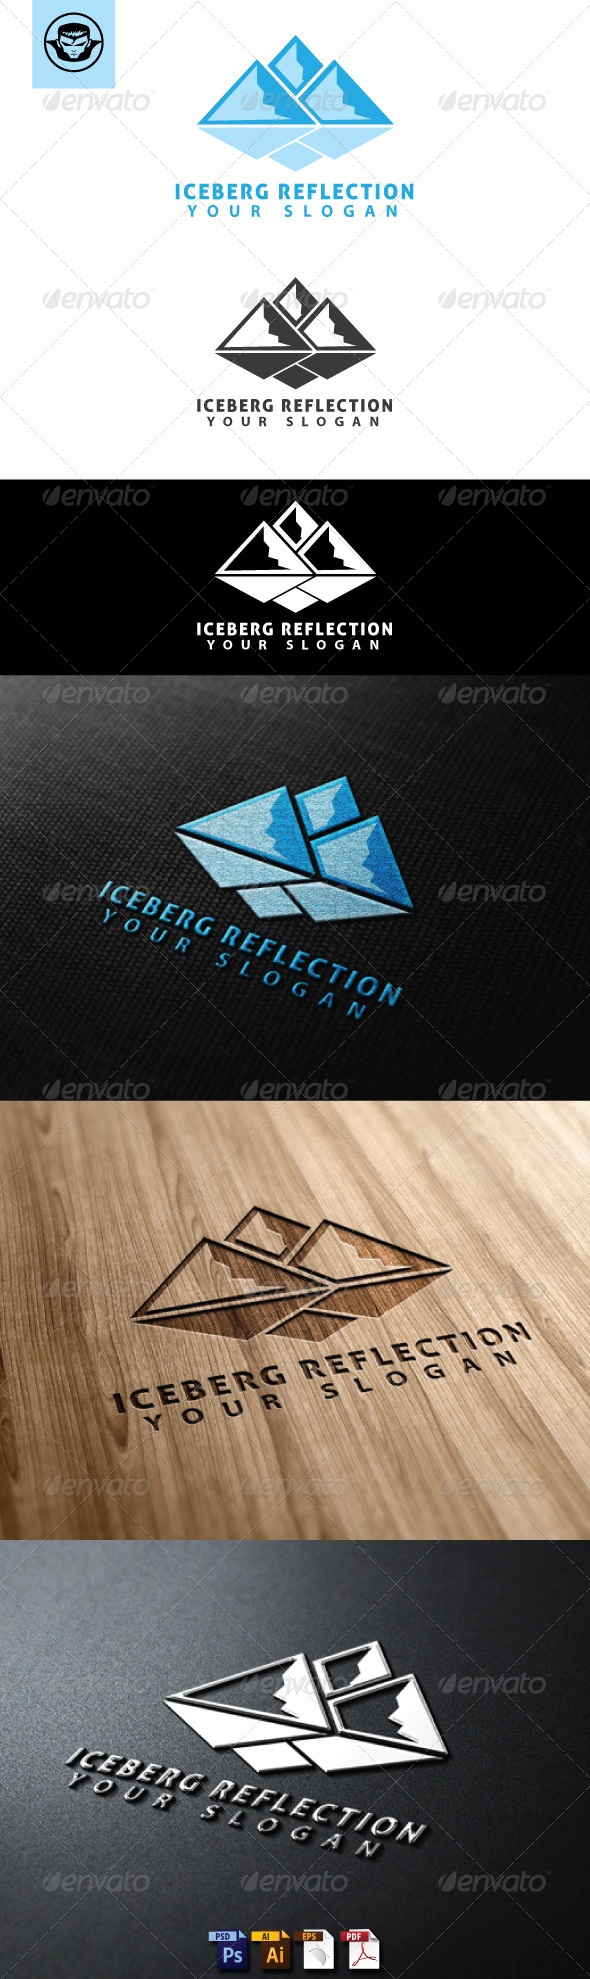 GraphicRiver Iceberg Reflection Logo Template 4765962